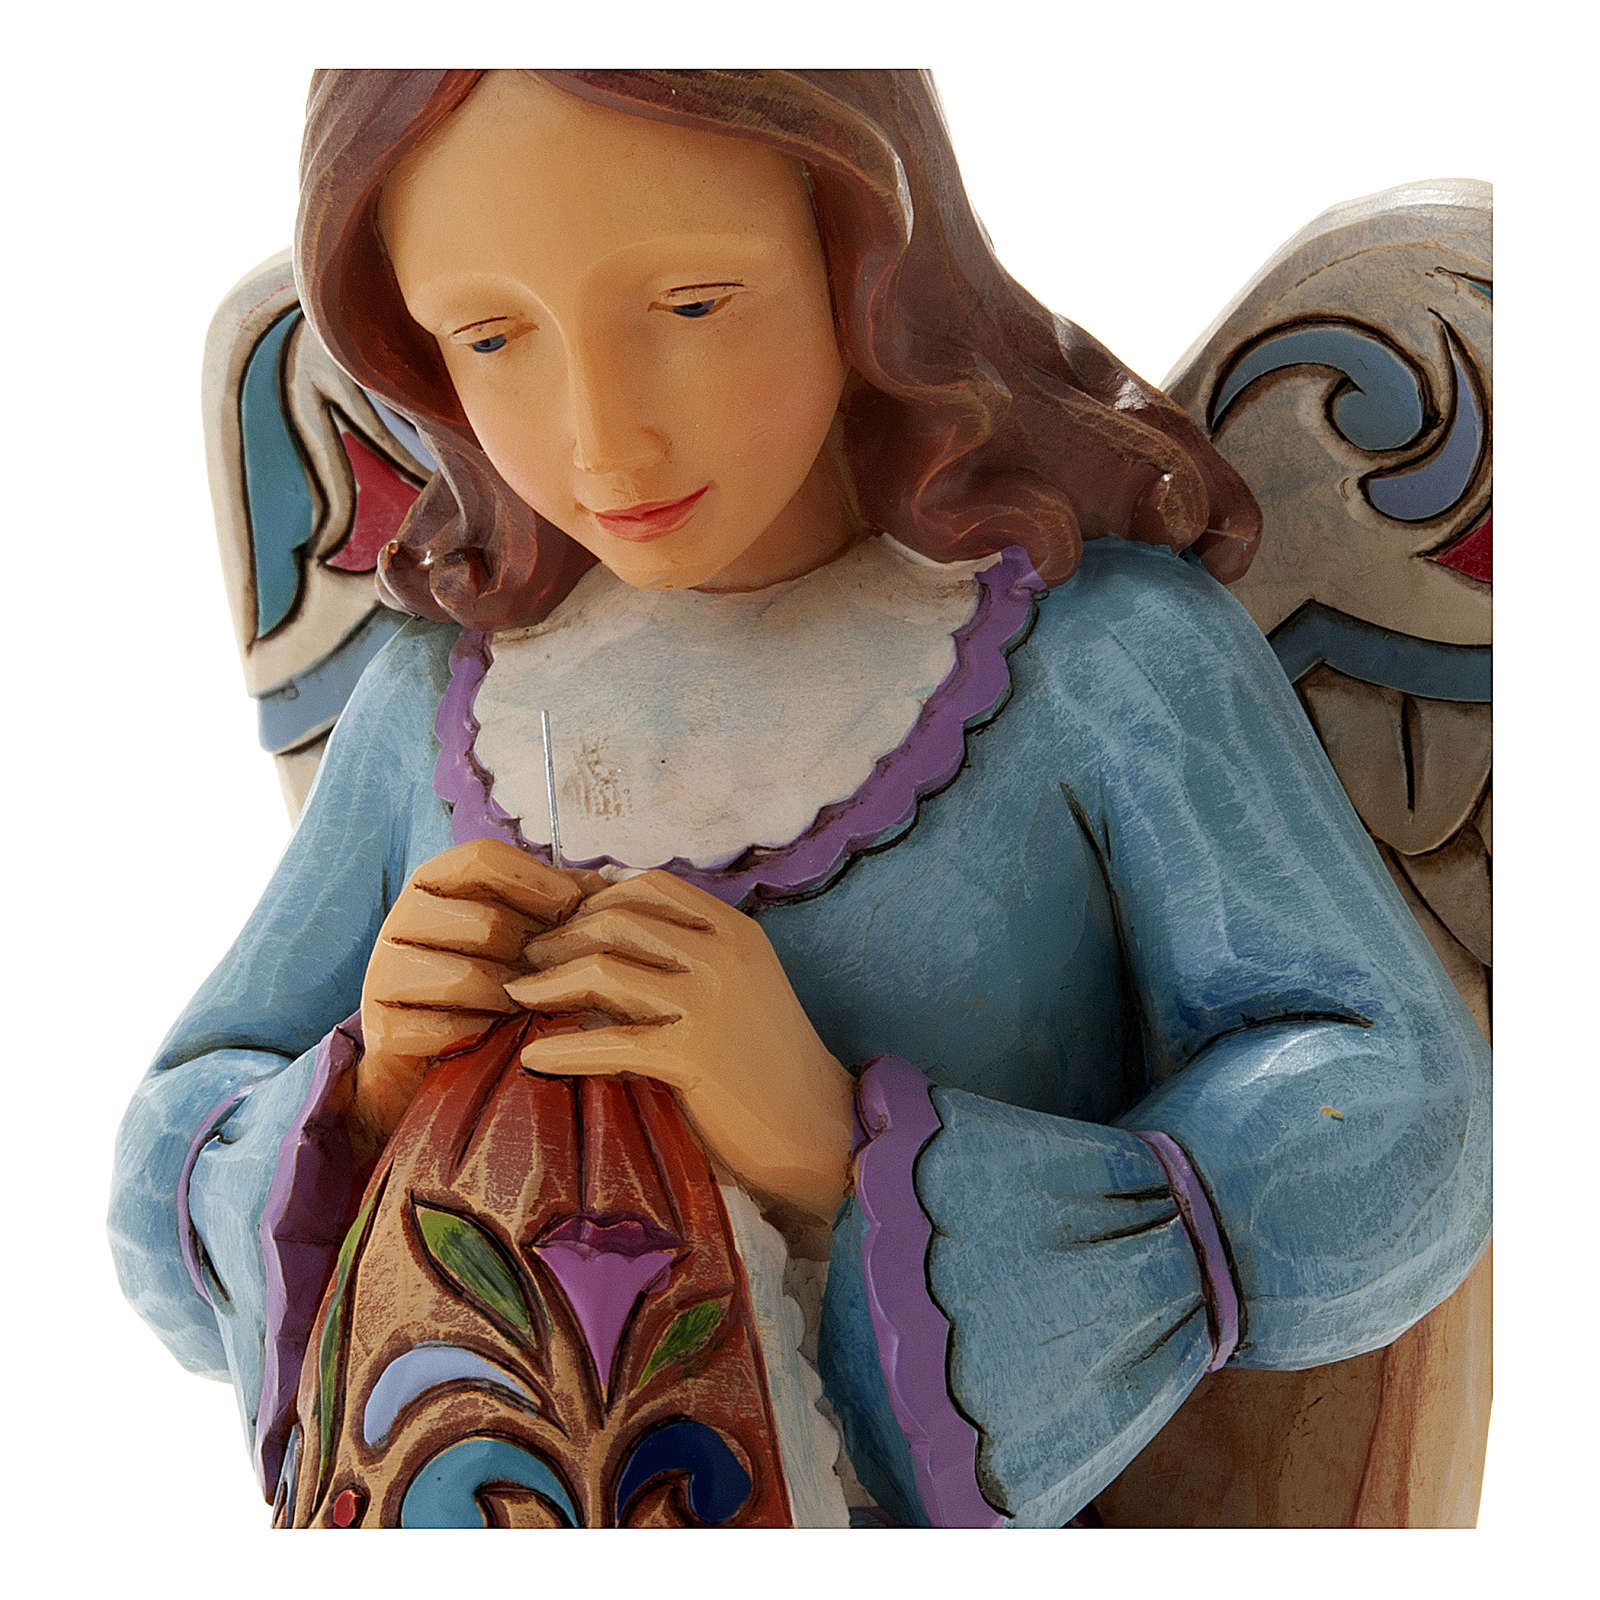 Sewing Angel figurine 4